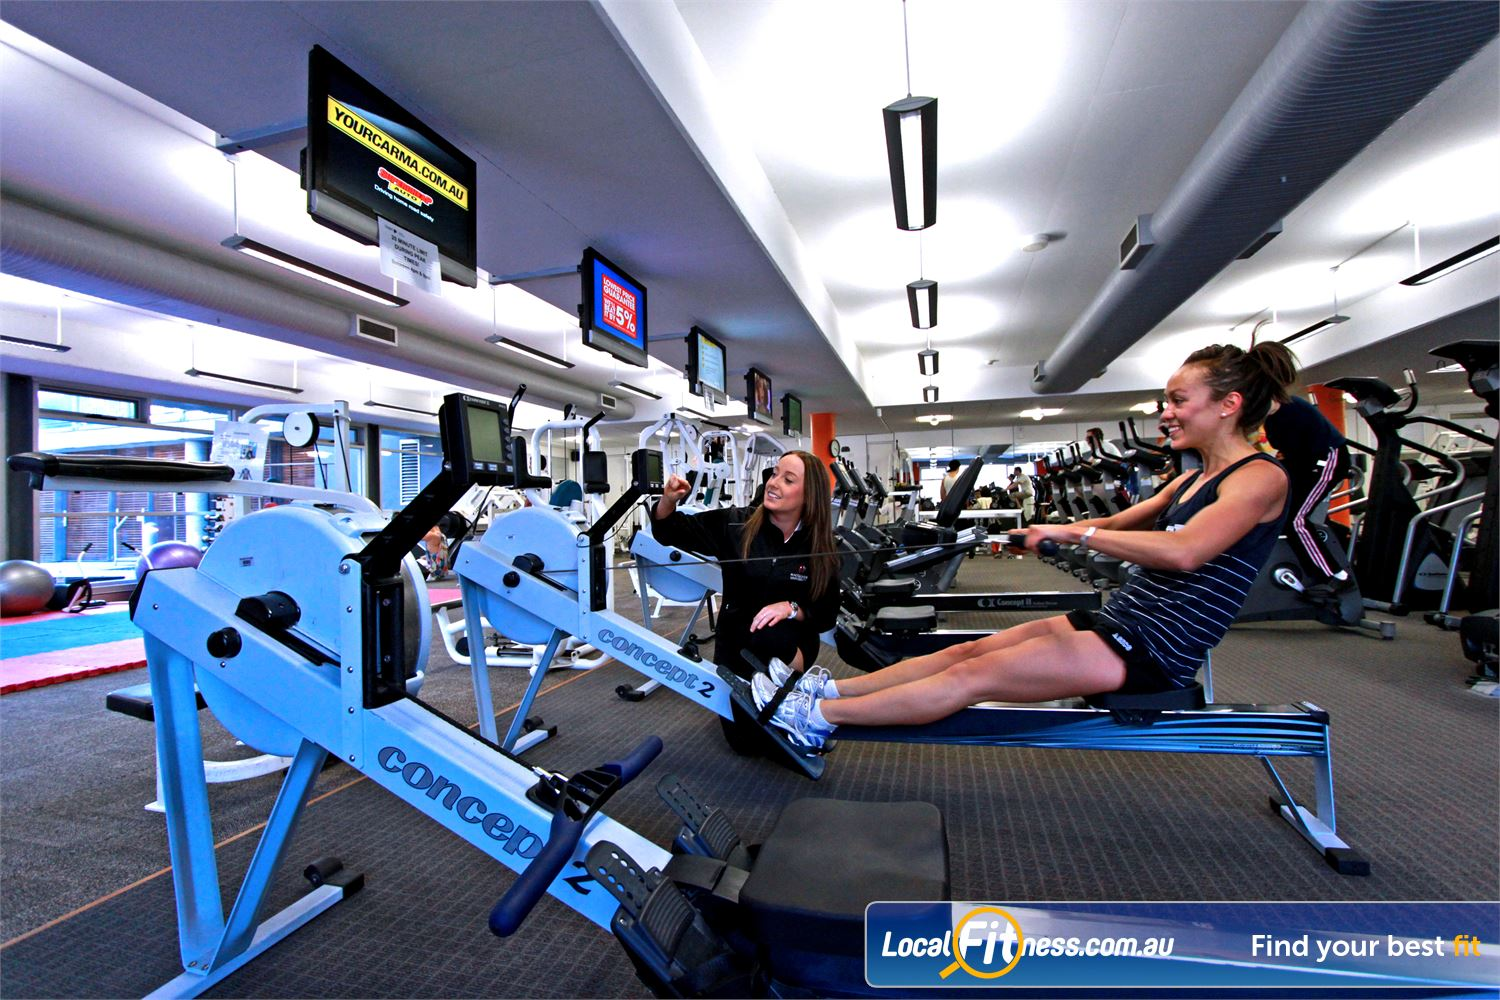 Macquarie University Sport & Aquatic Centre Macquarie Park Vary your workout with a variety of treadmills, cross-trainers, rowers and more.